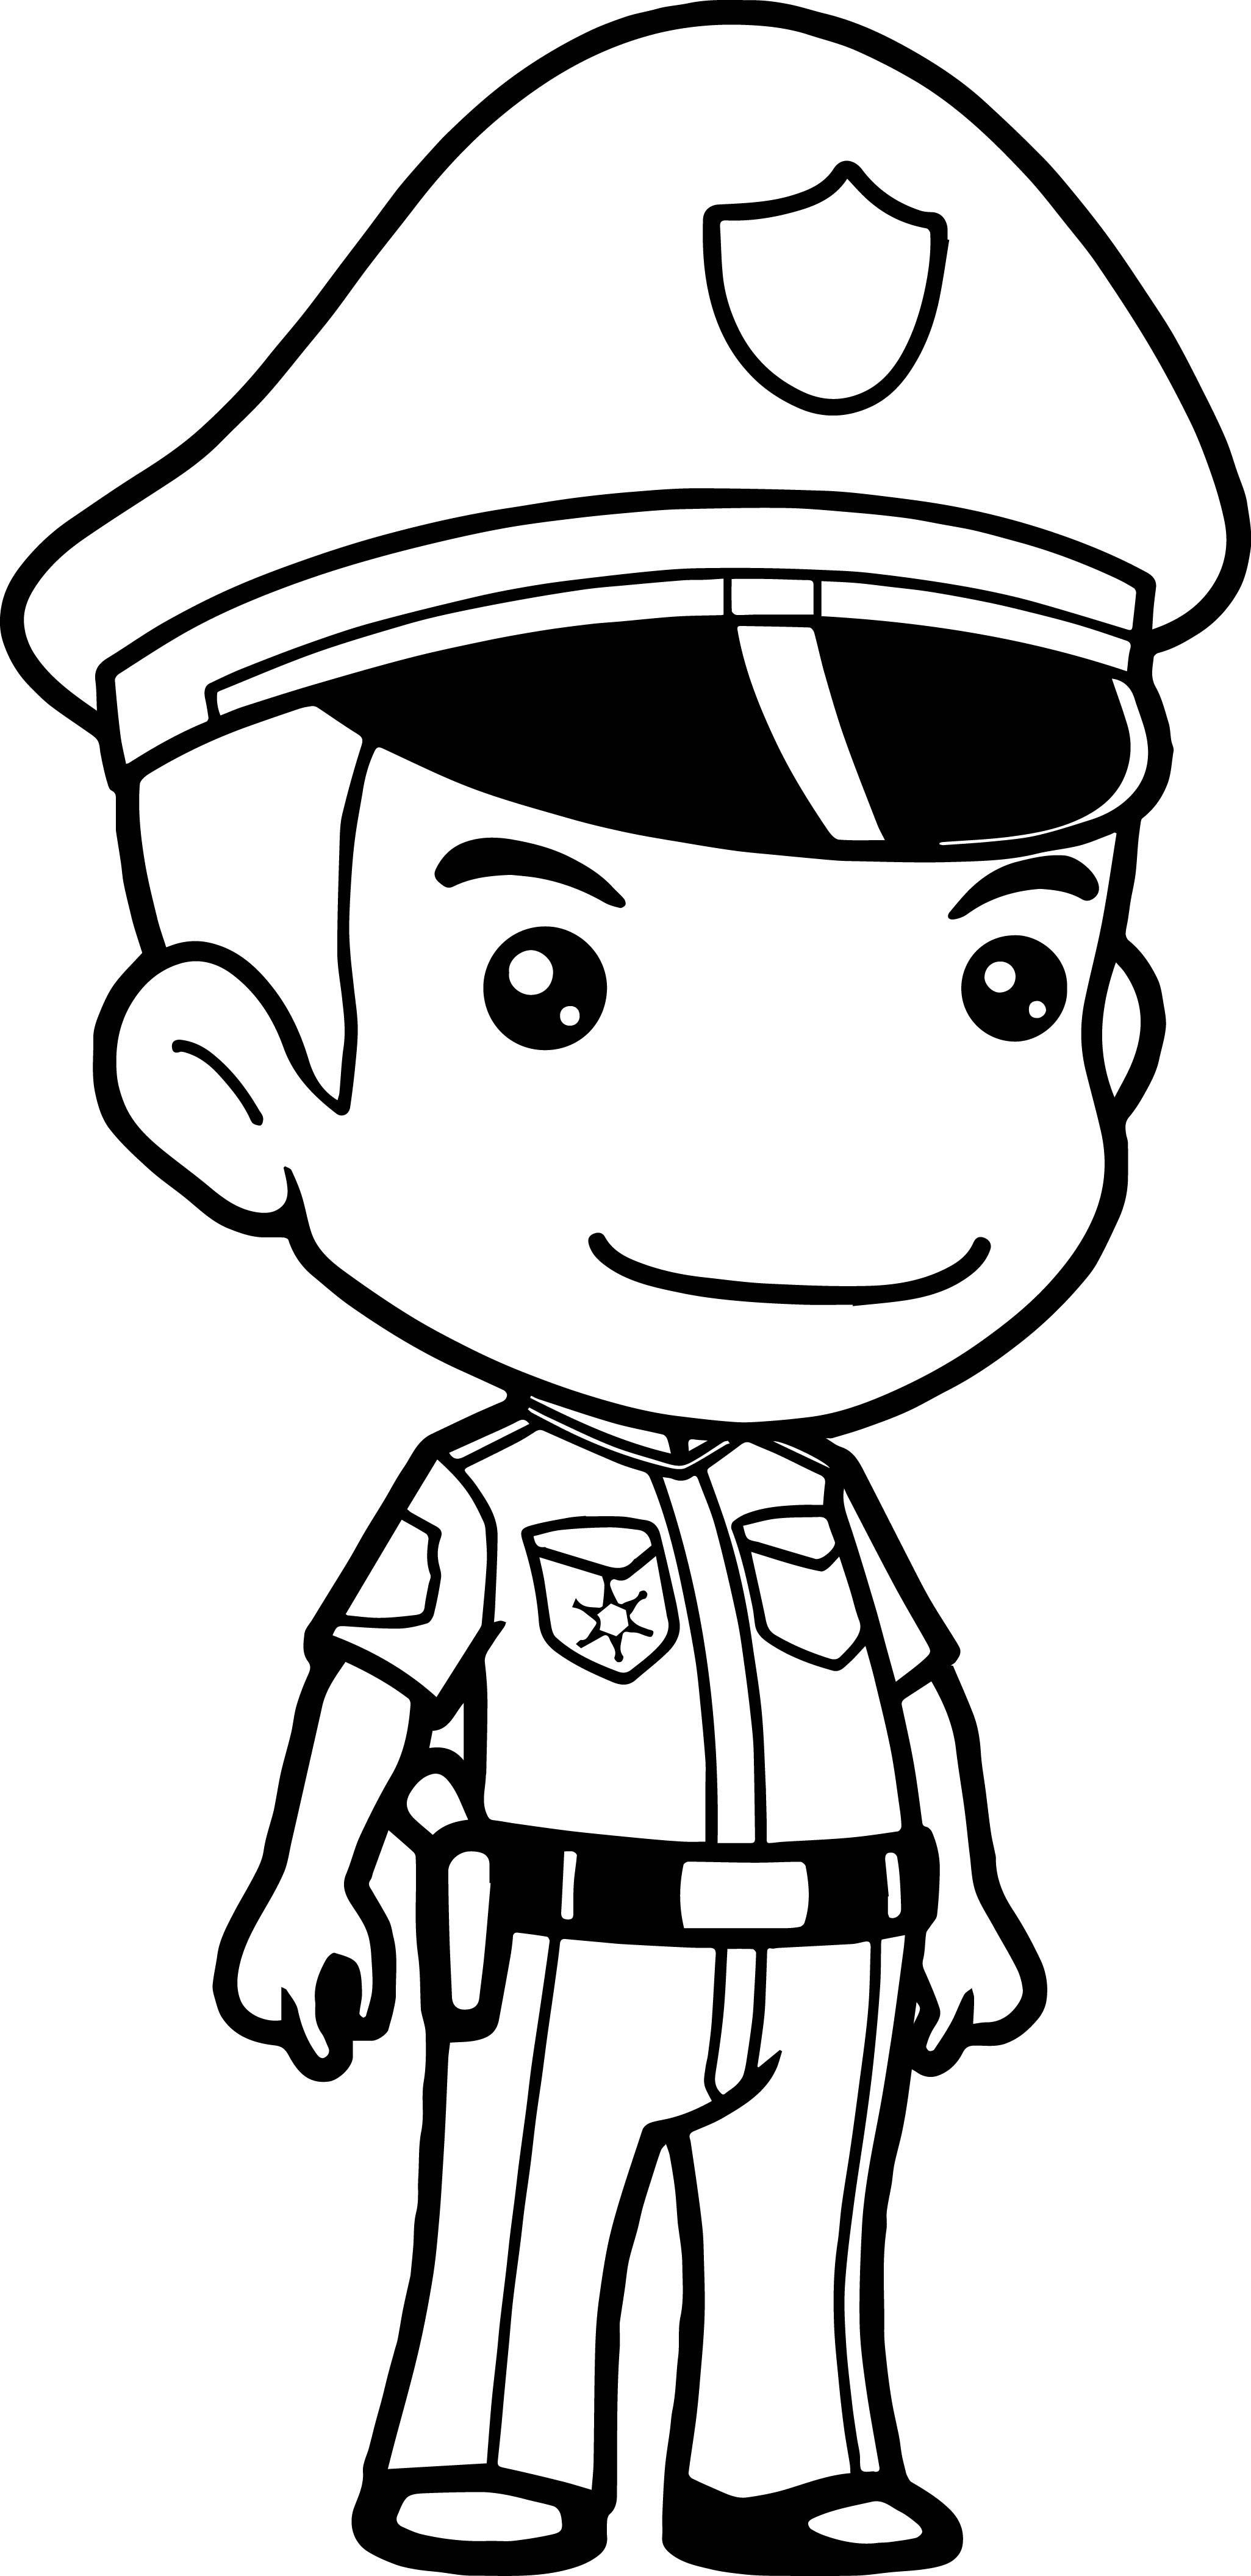 Anime policeman coloring page for Police officer coloring page